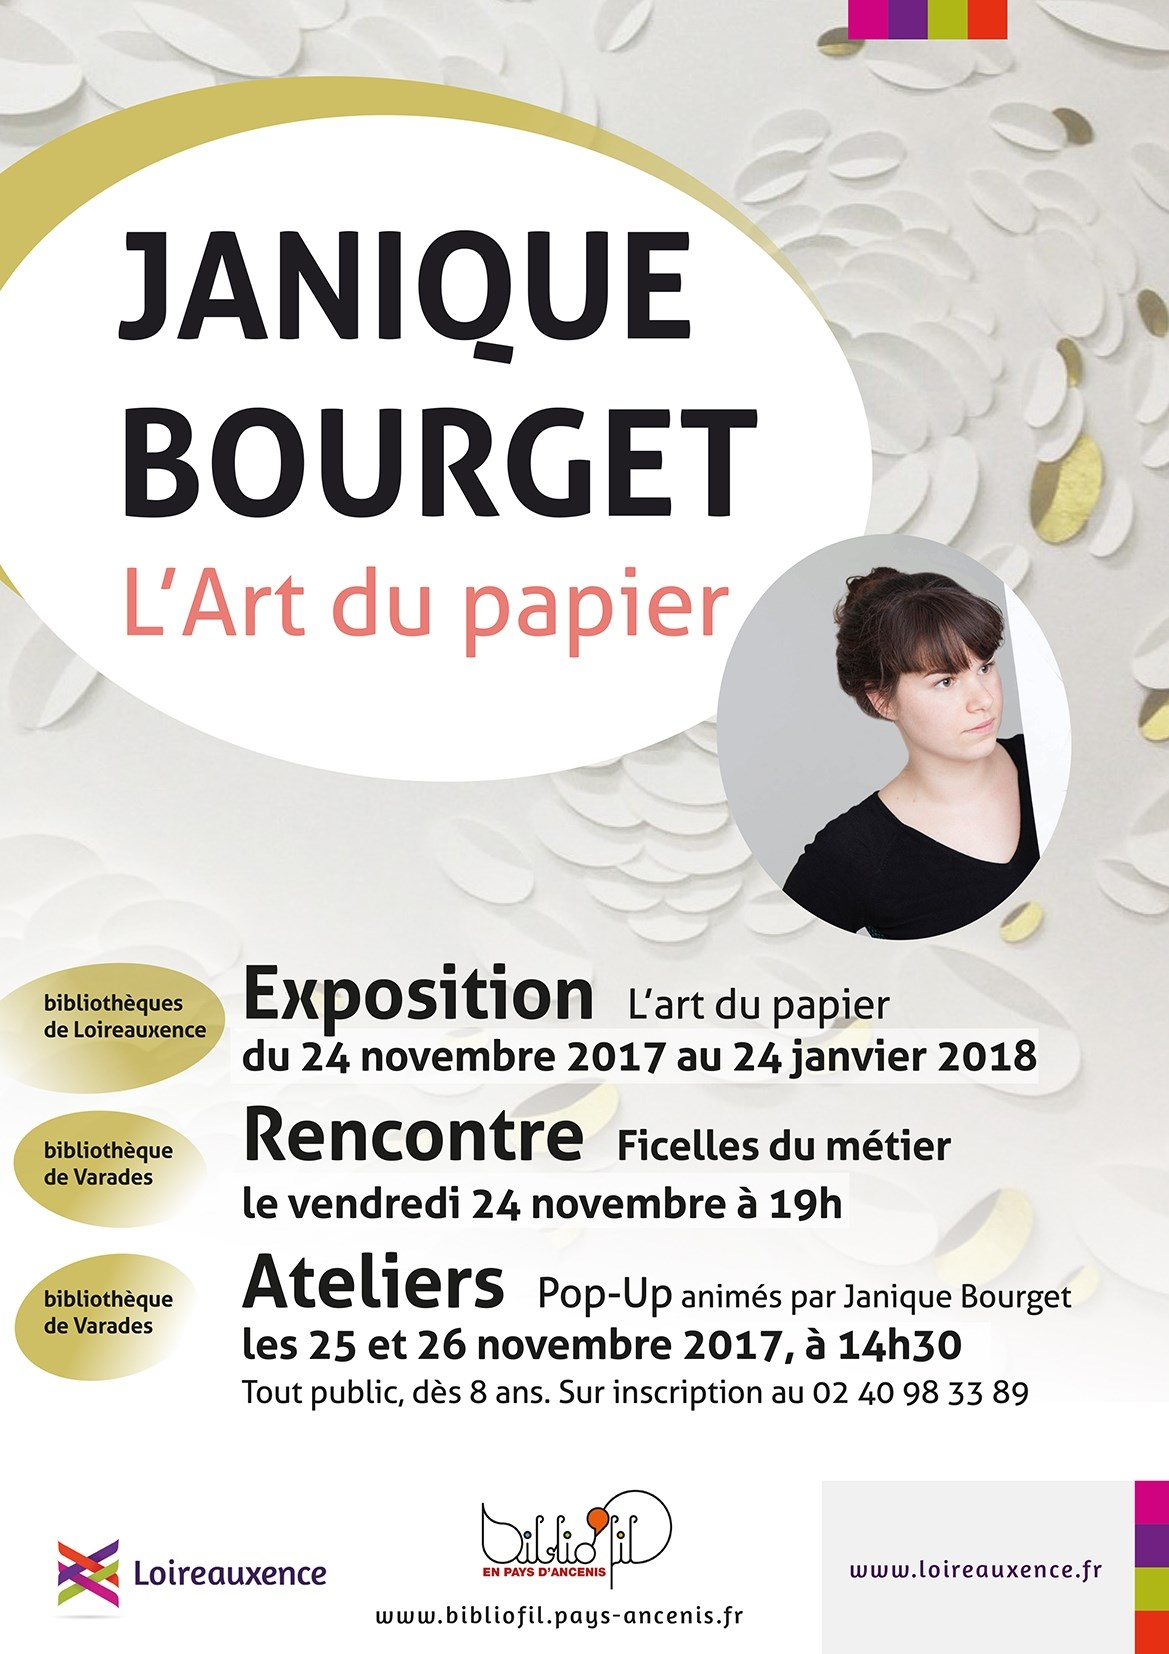 ateliers pop up en papier avec janique bourget loireauxence 25 11 2017 26 11 2017 divers. Black Bedroom Furniture Sets. Home Design Ideas